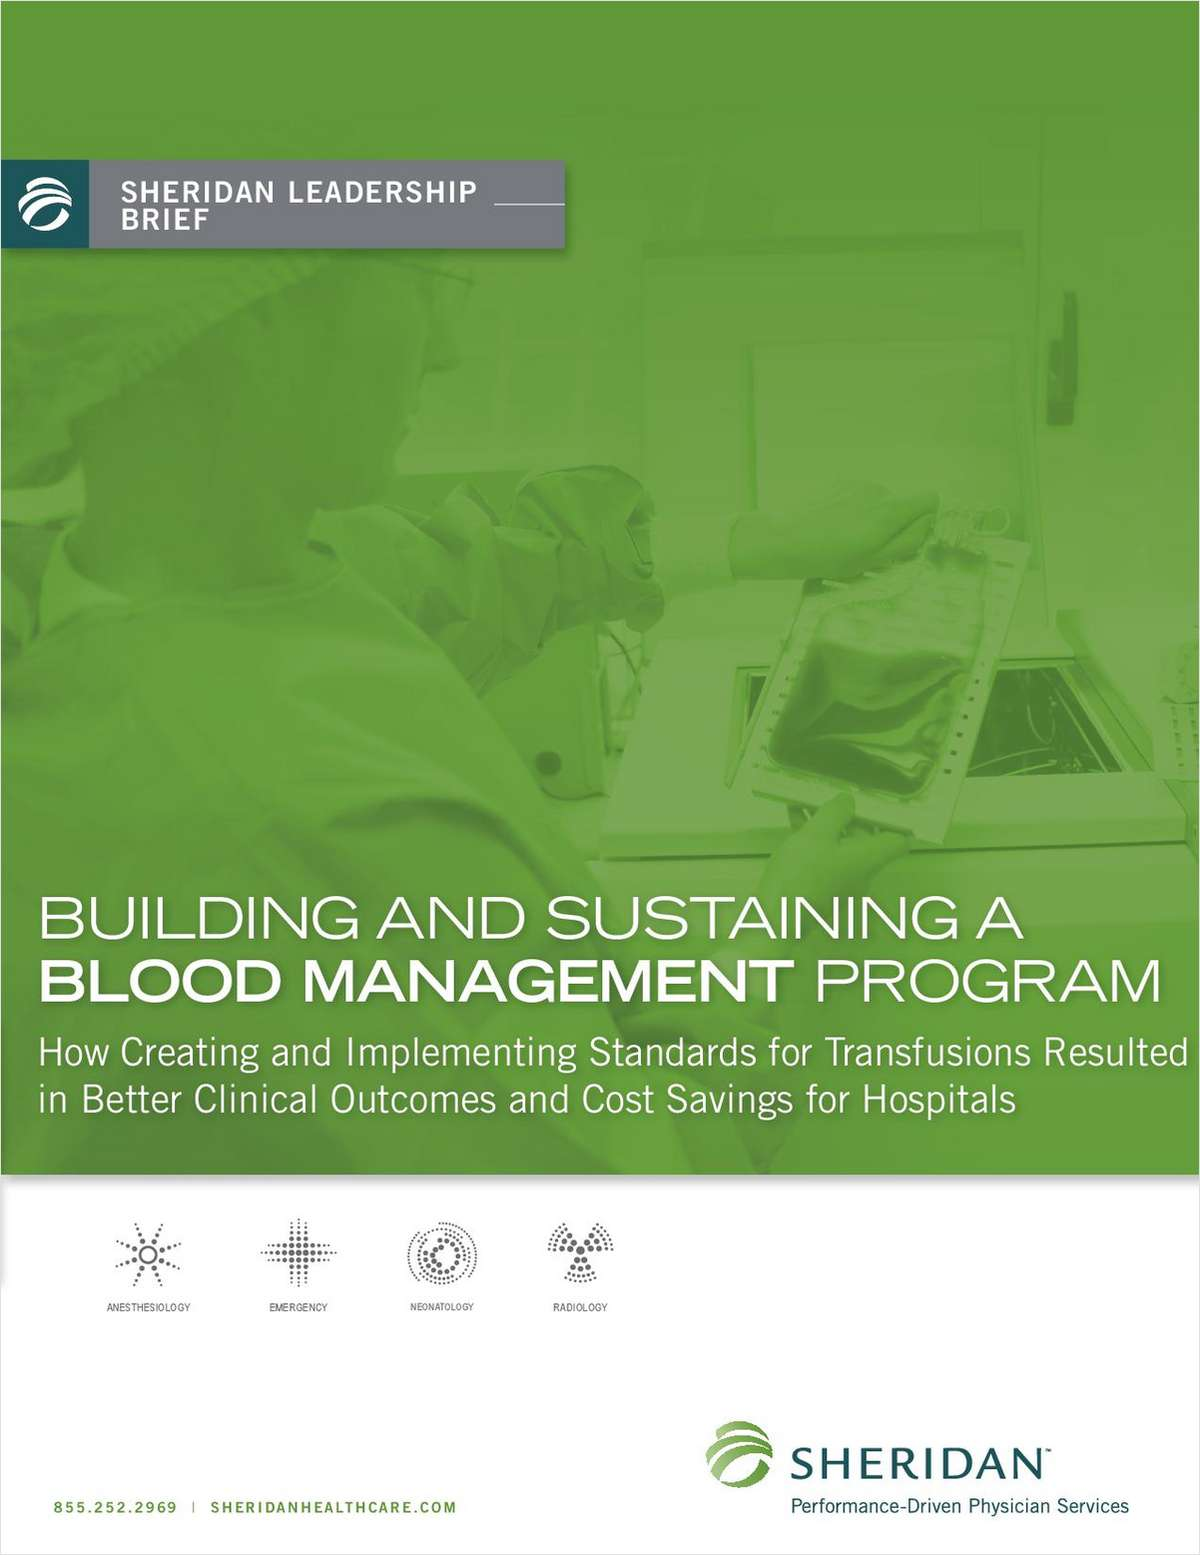 Building and Sustaining a Blood Management Program